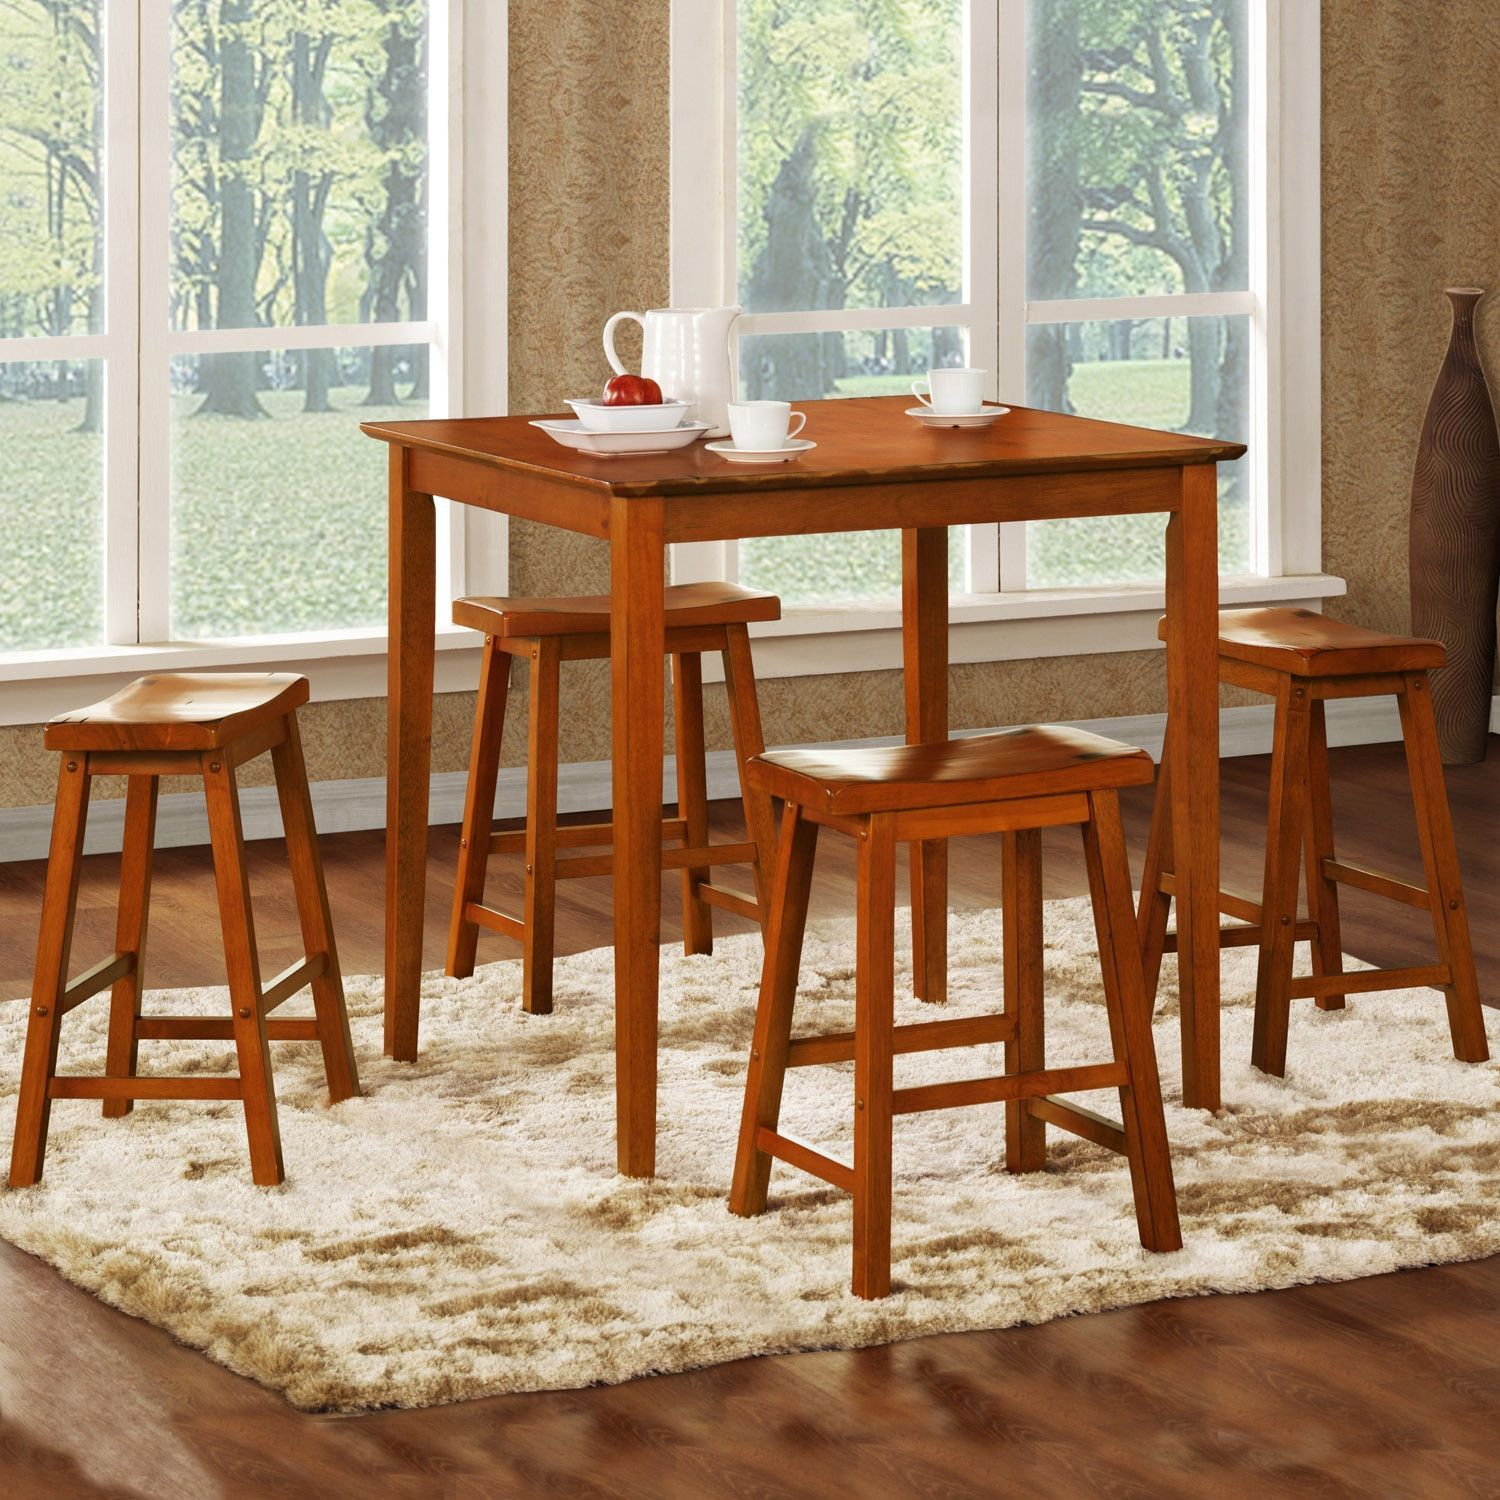 Oxford Creek Oak 5 Piece Pub Set With Stools, Orange